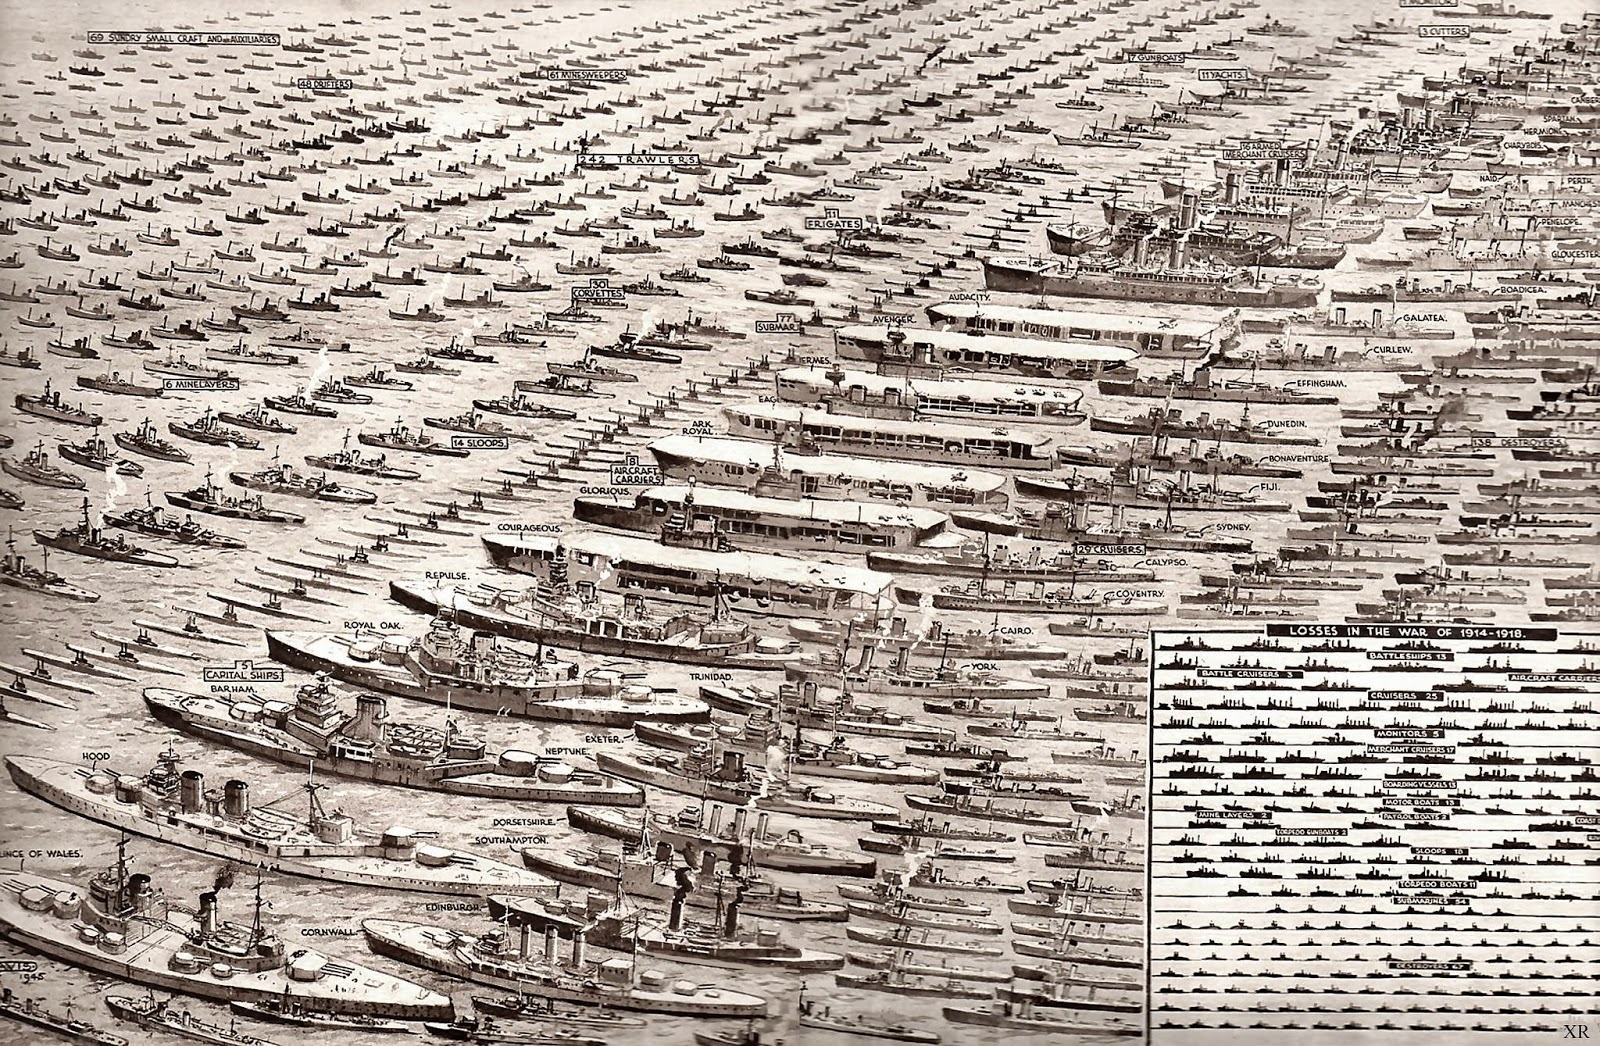 Navalyses Fleets 5 Royal Navy In Wwi And Wwii Classes Vessels And Losses